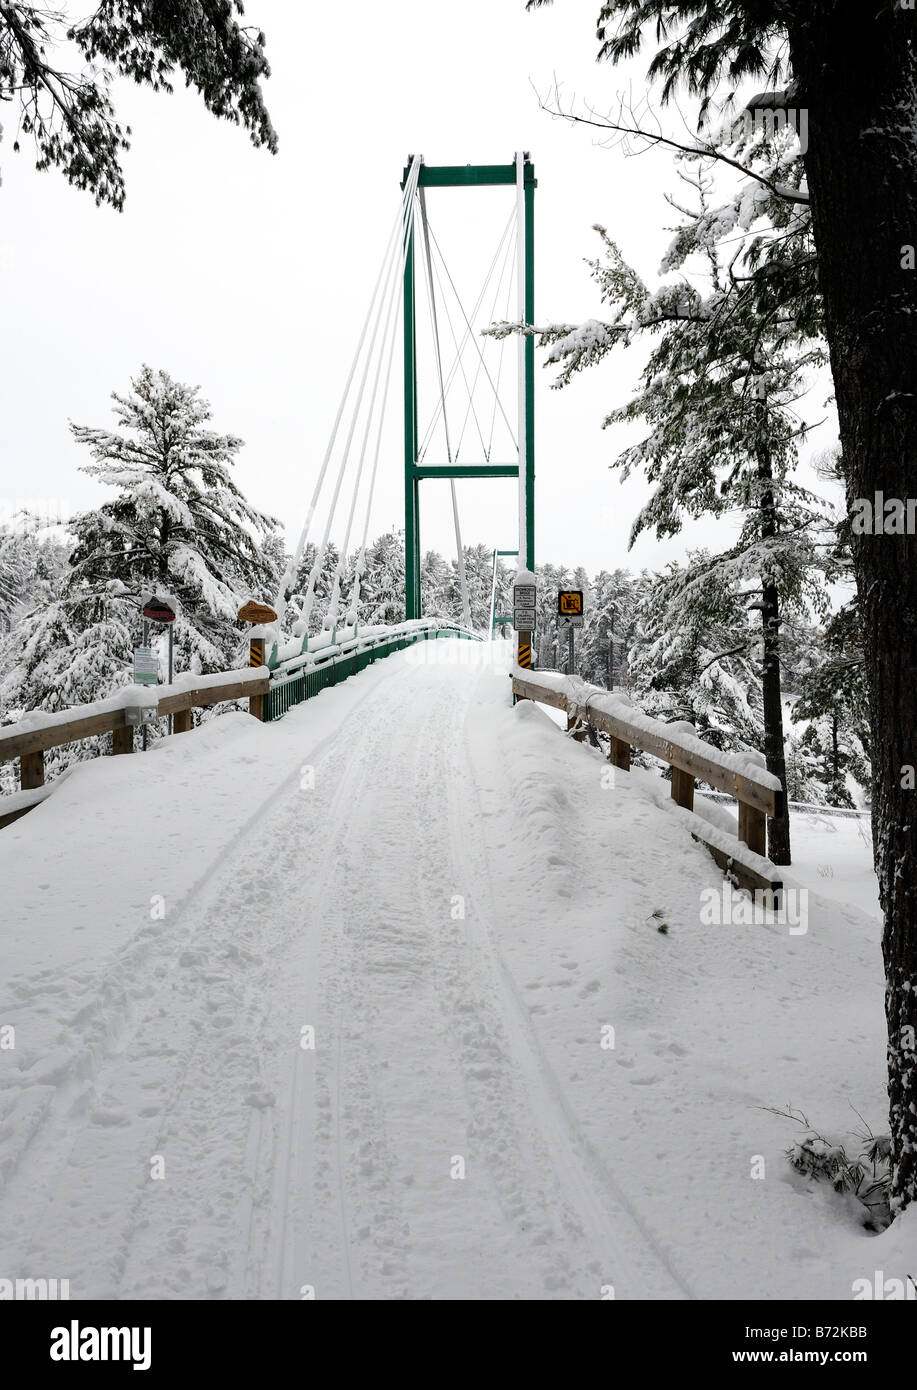 Snowmobile bridge over the French River, Ontario, Canada - Stock Image